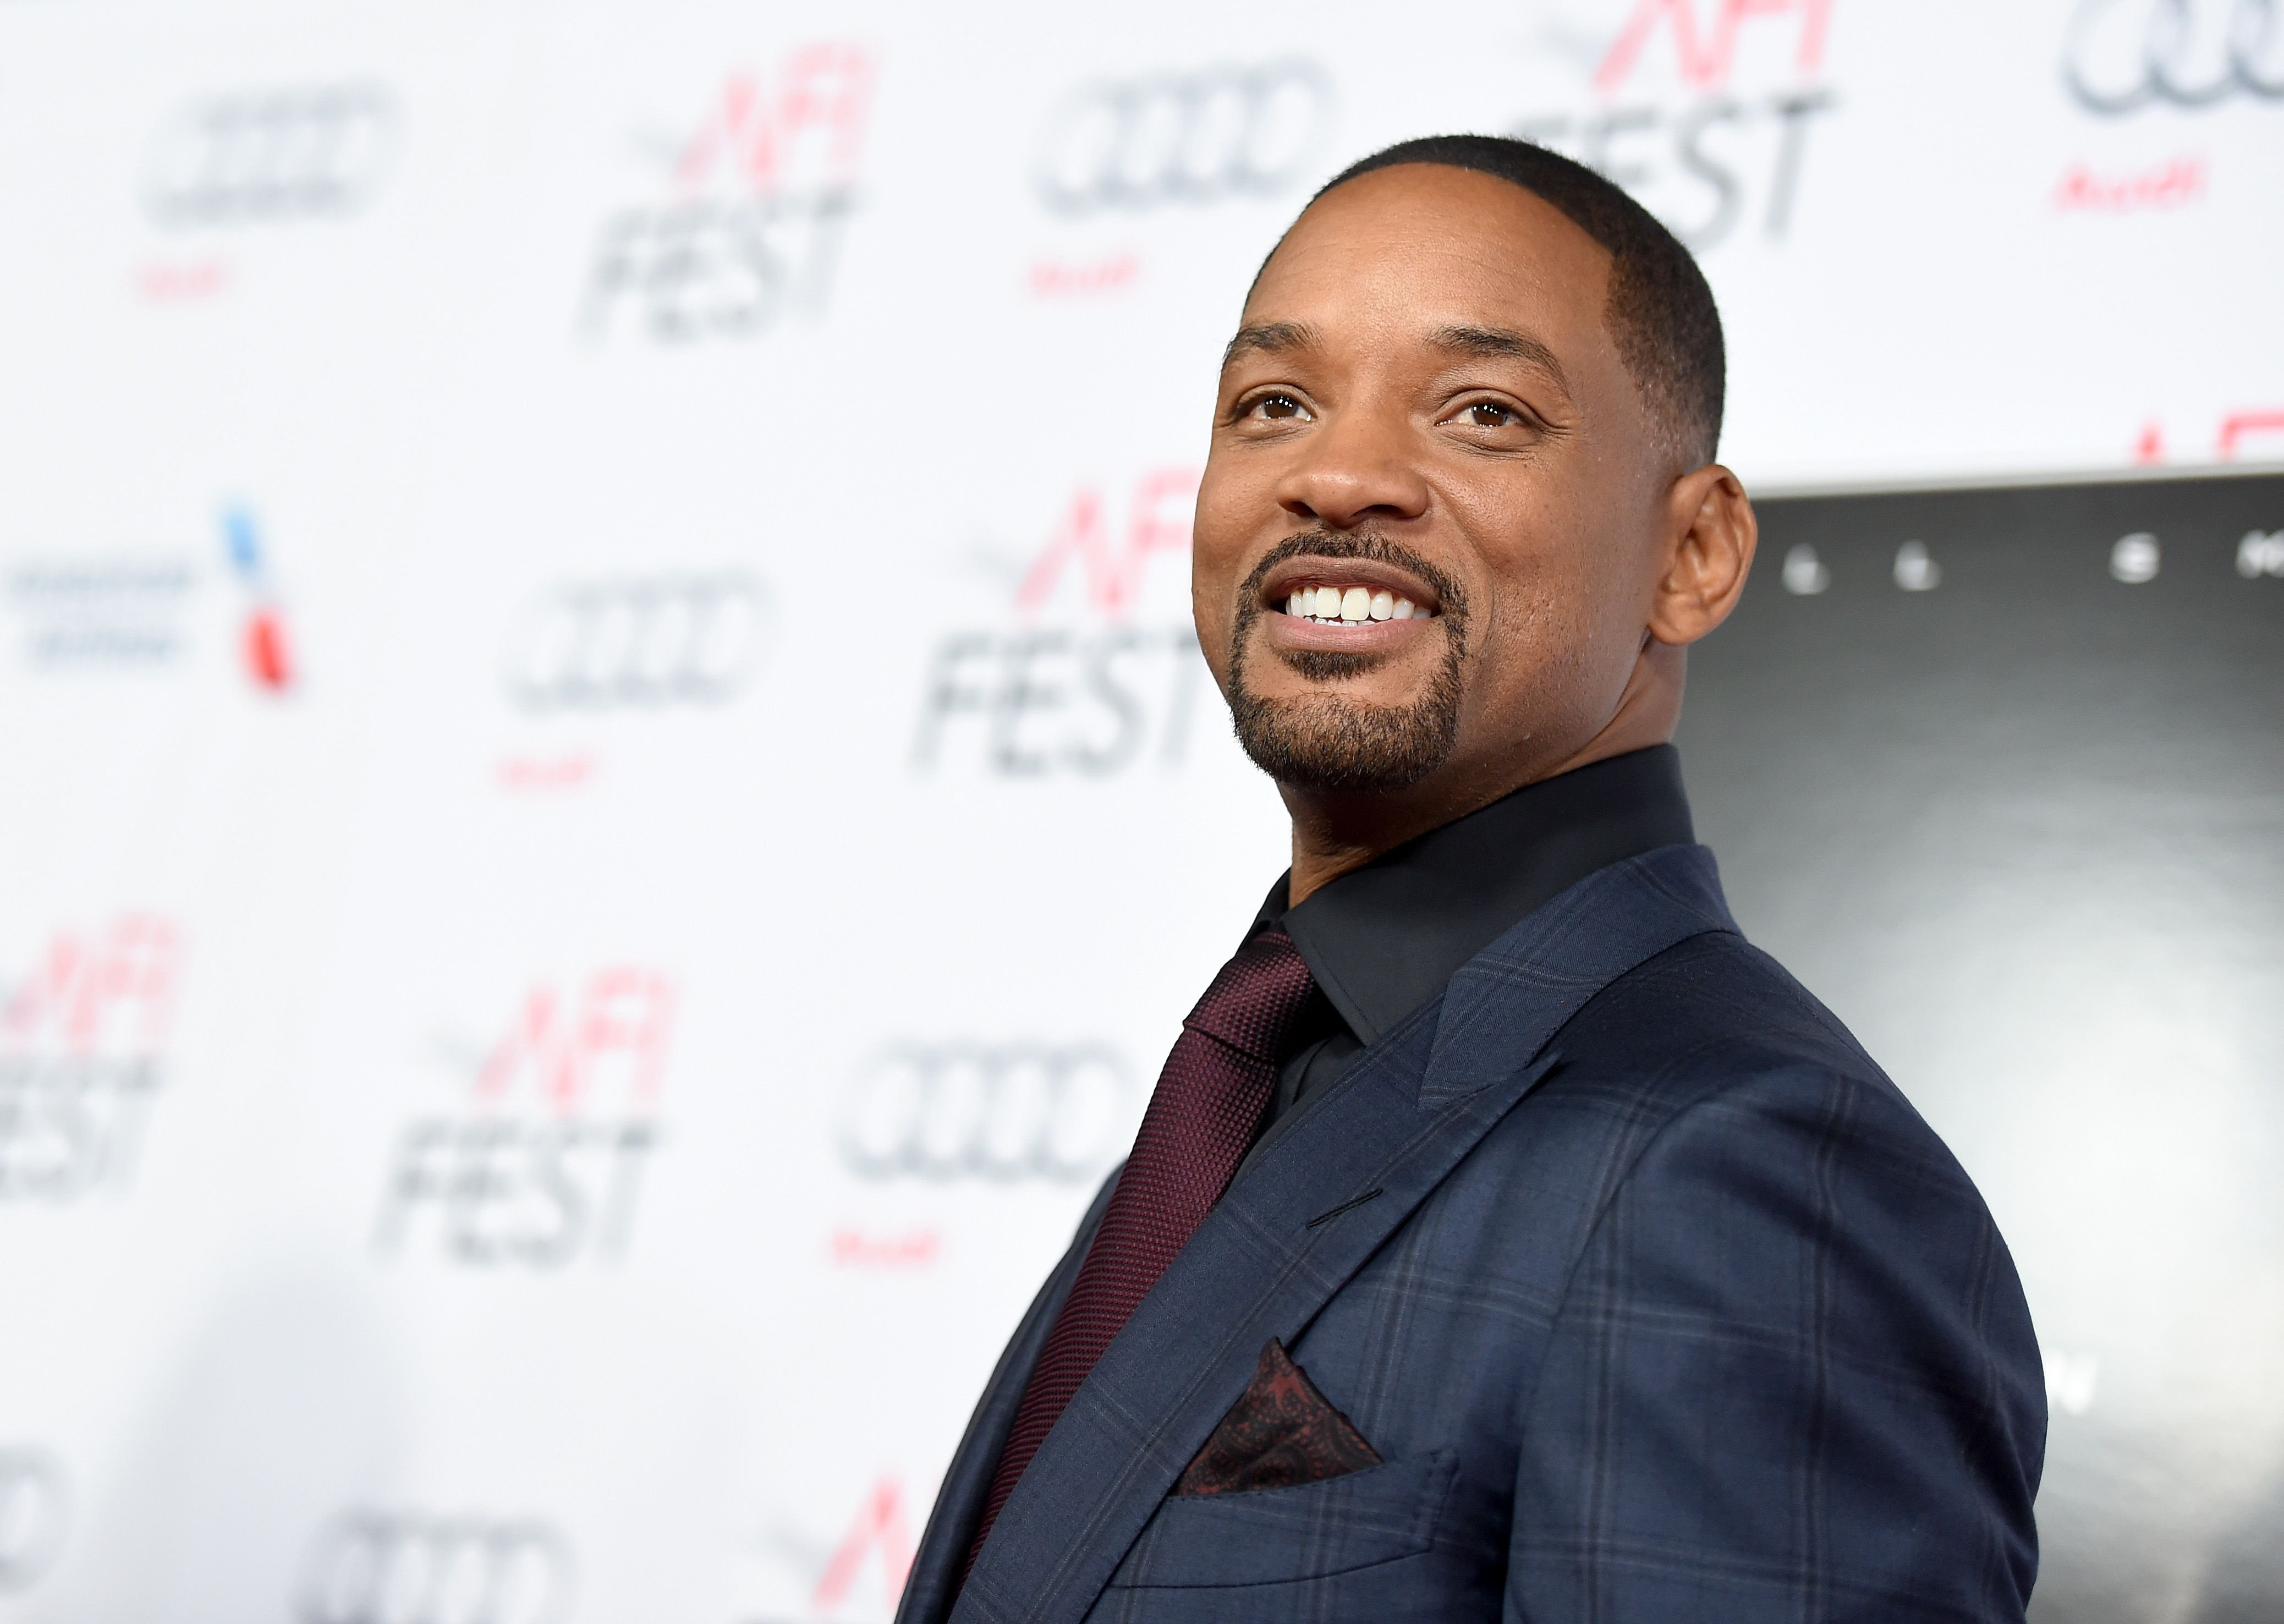 """Will Smith at the Premiere of """"Concussion"""" on November 10, 2015 in California 